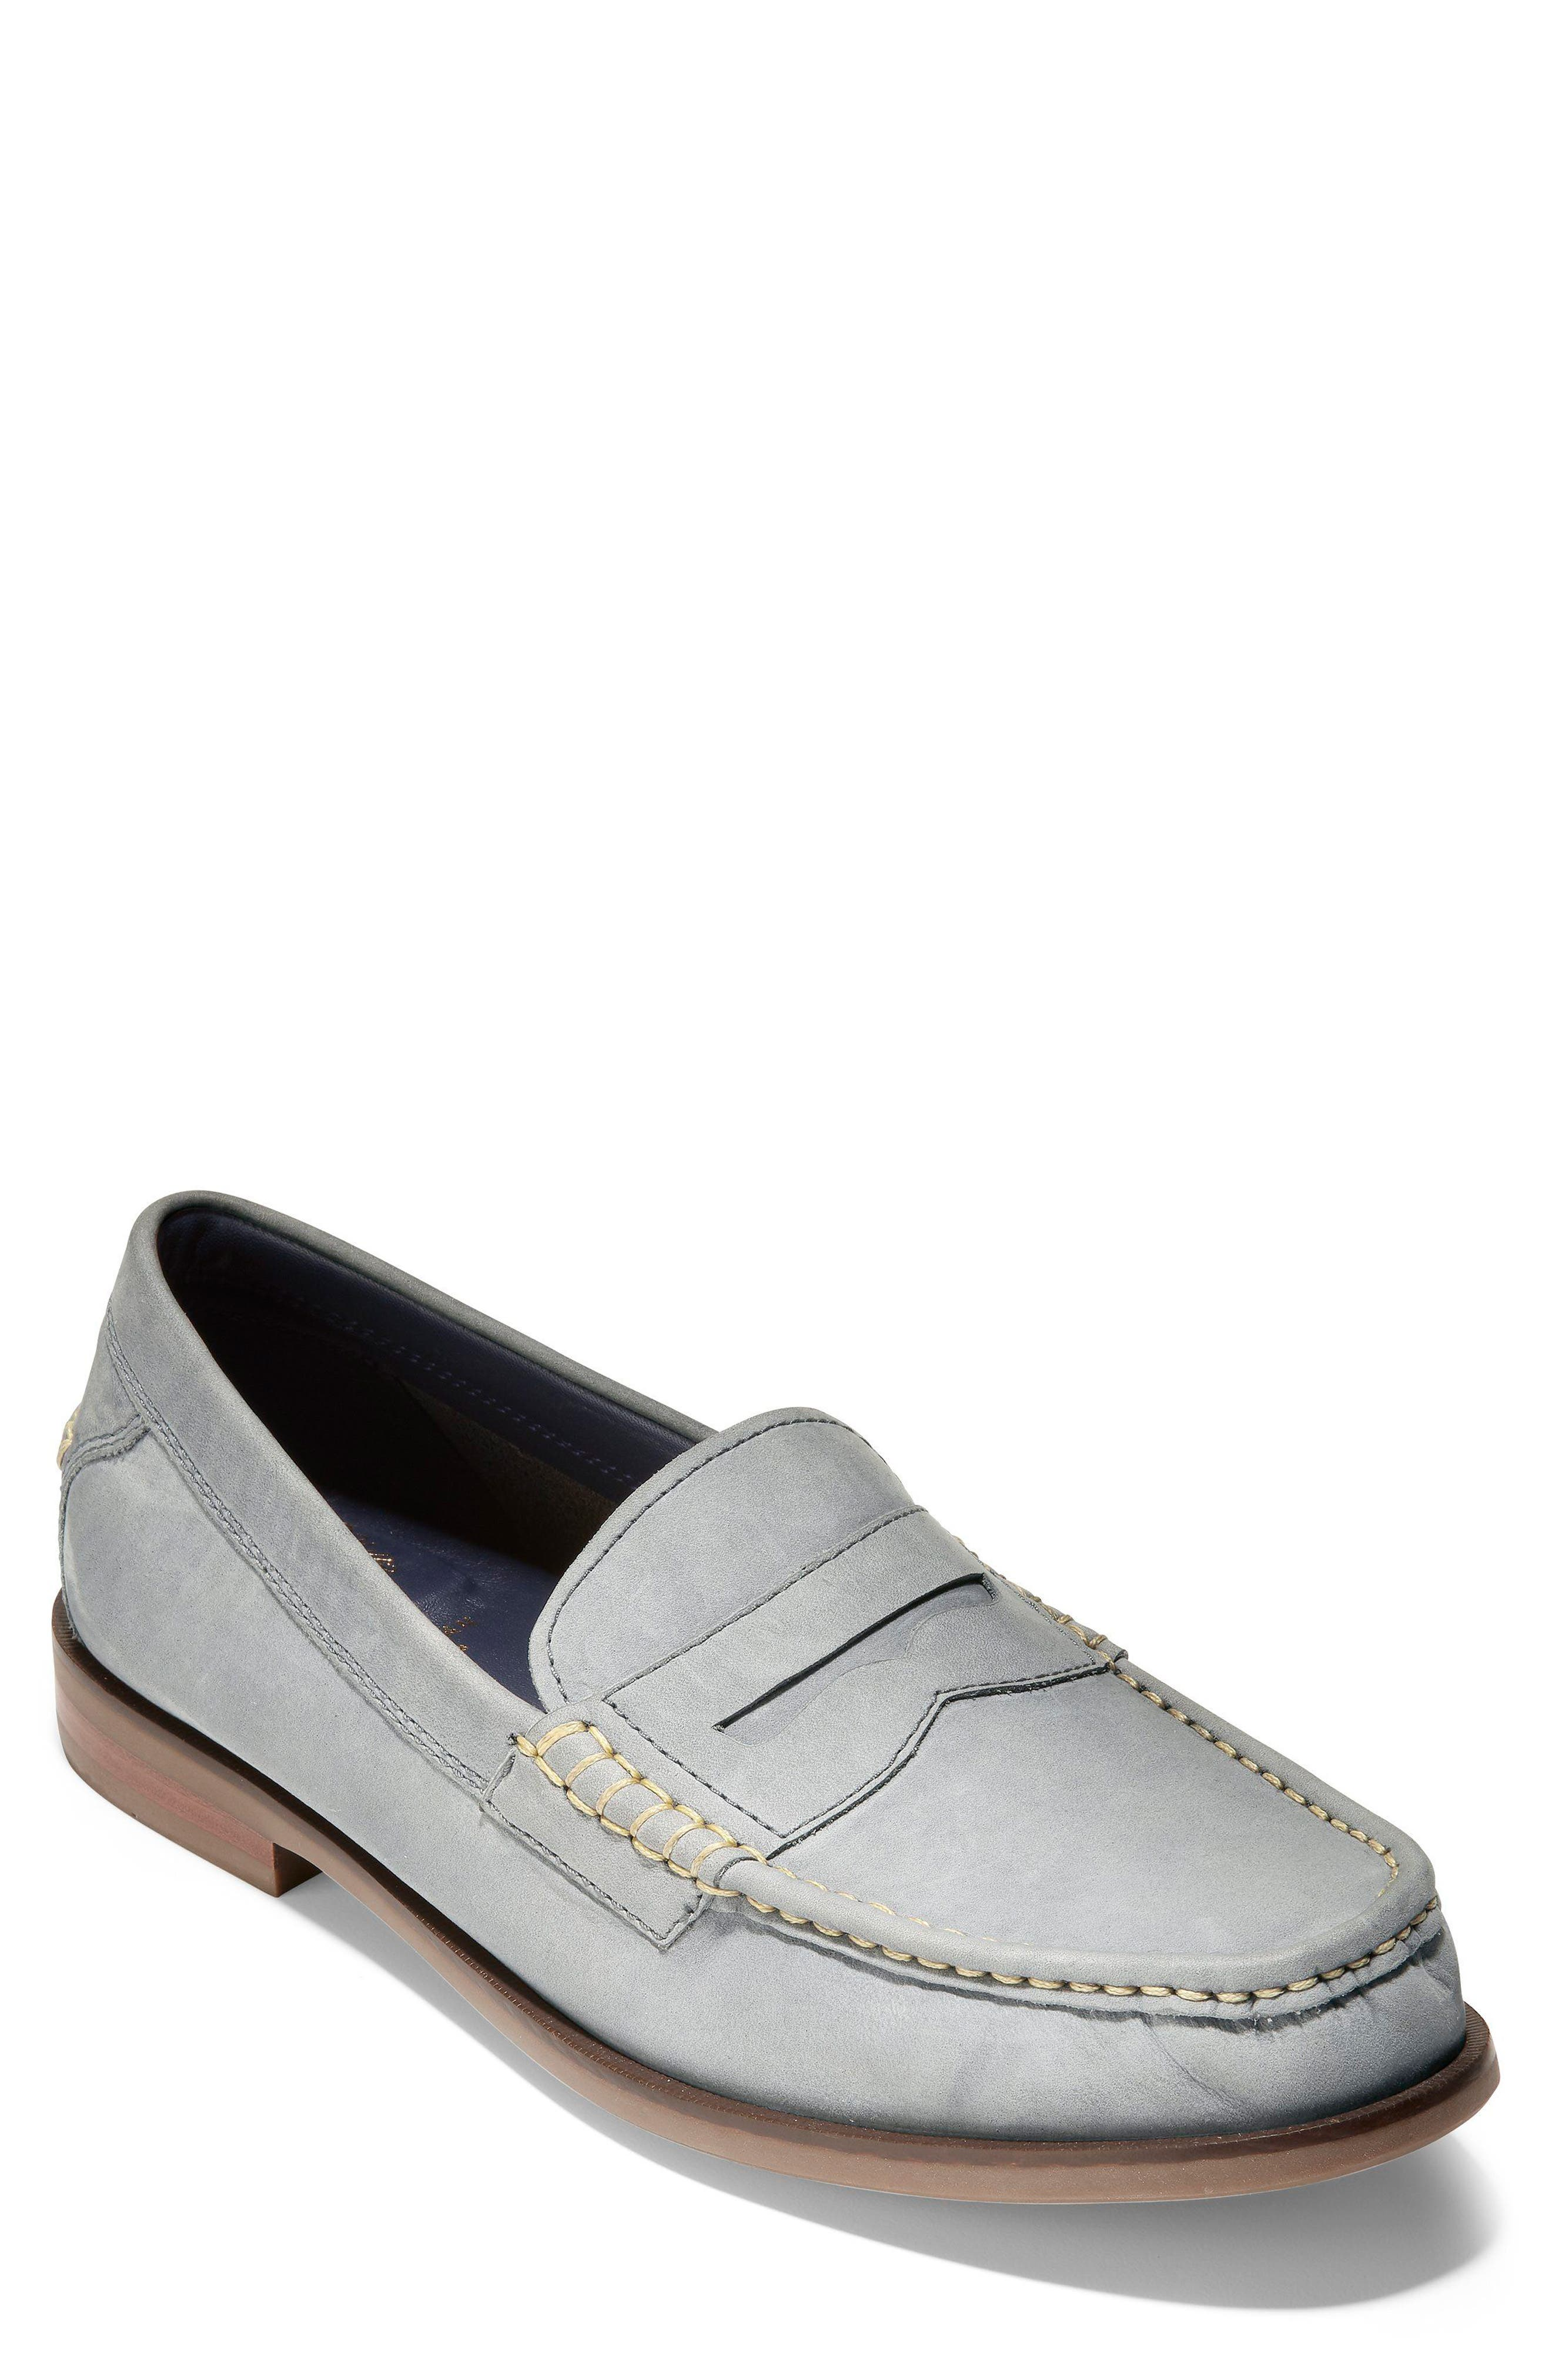 Pinch Friday Penny Loafer,                         Main,                         color, Excalibur Nubuck